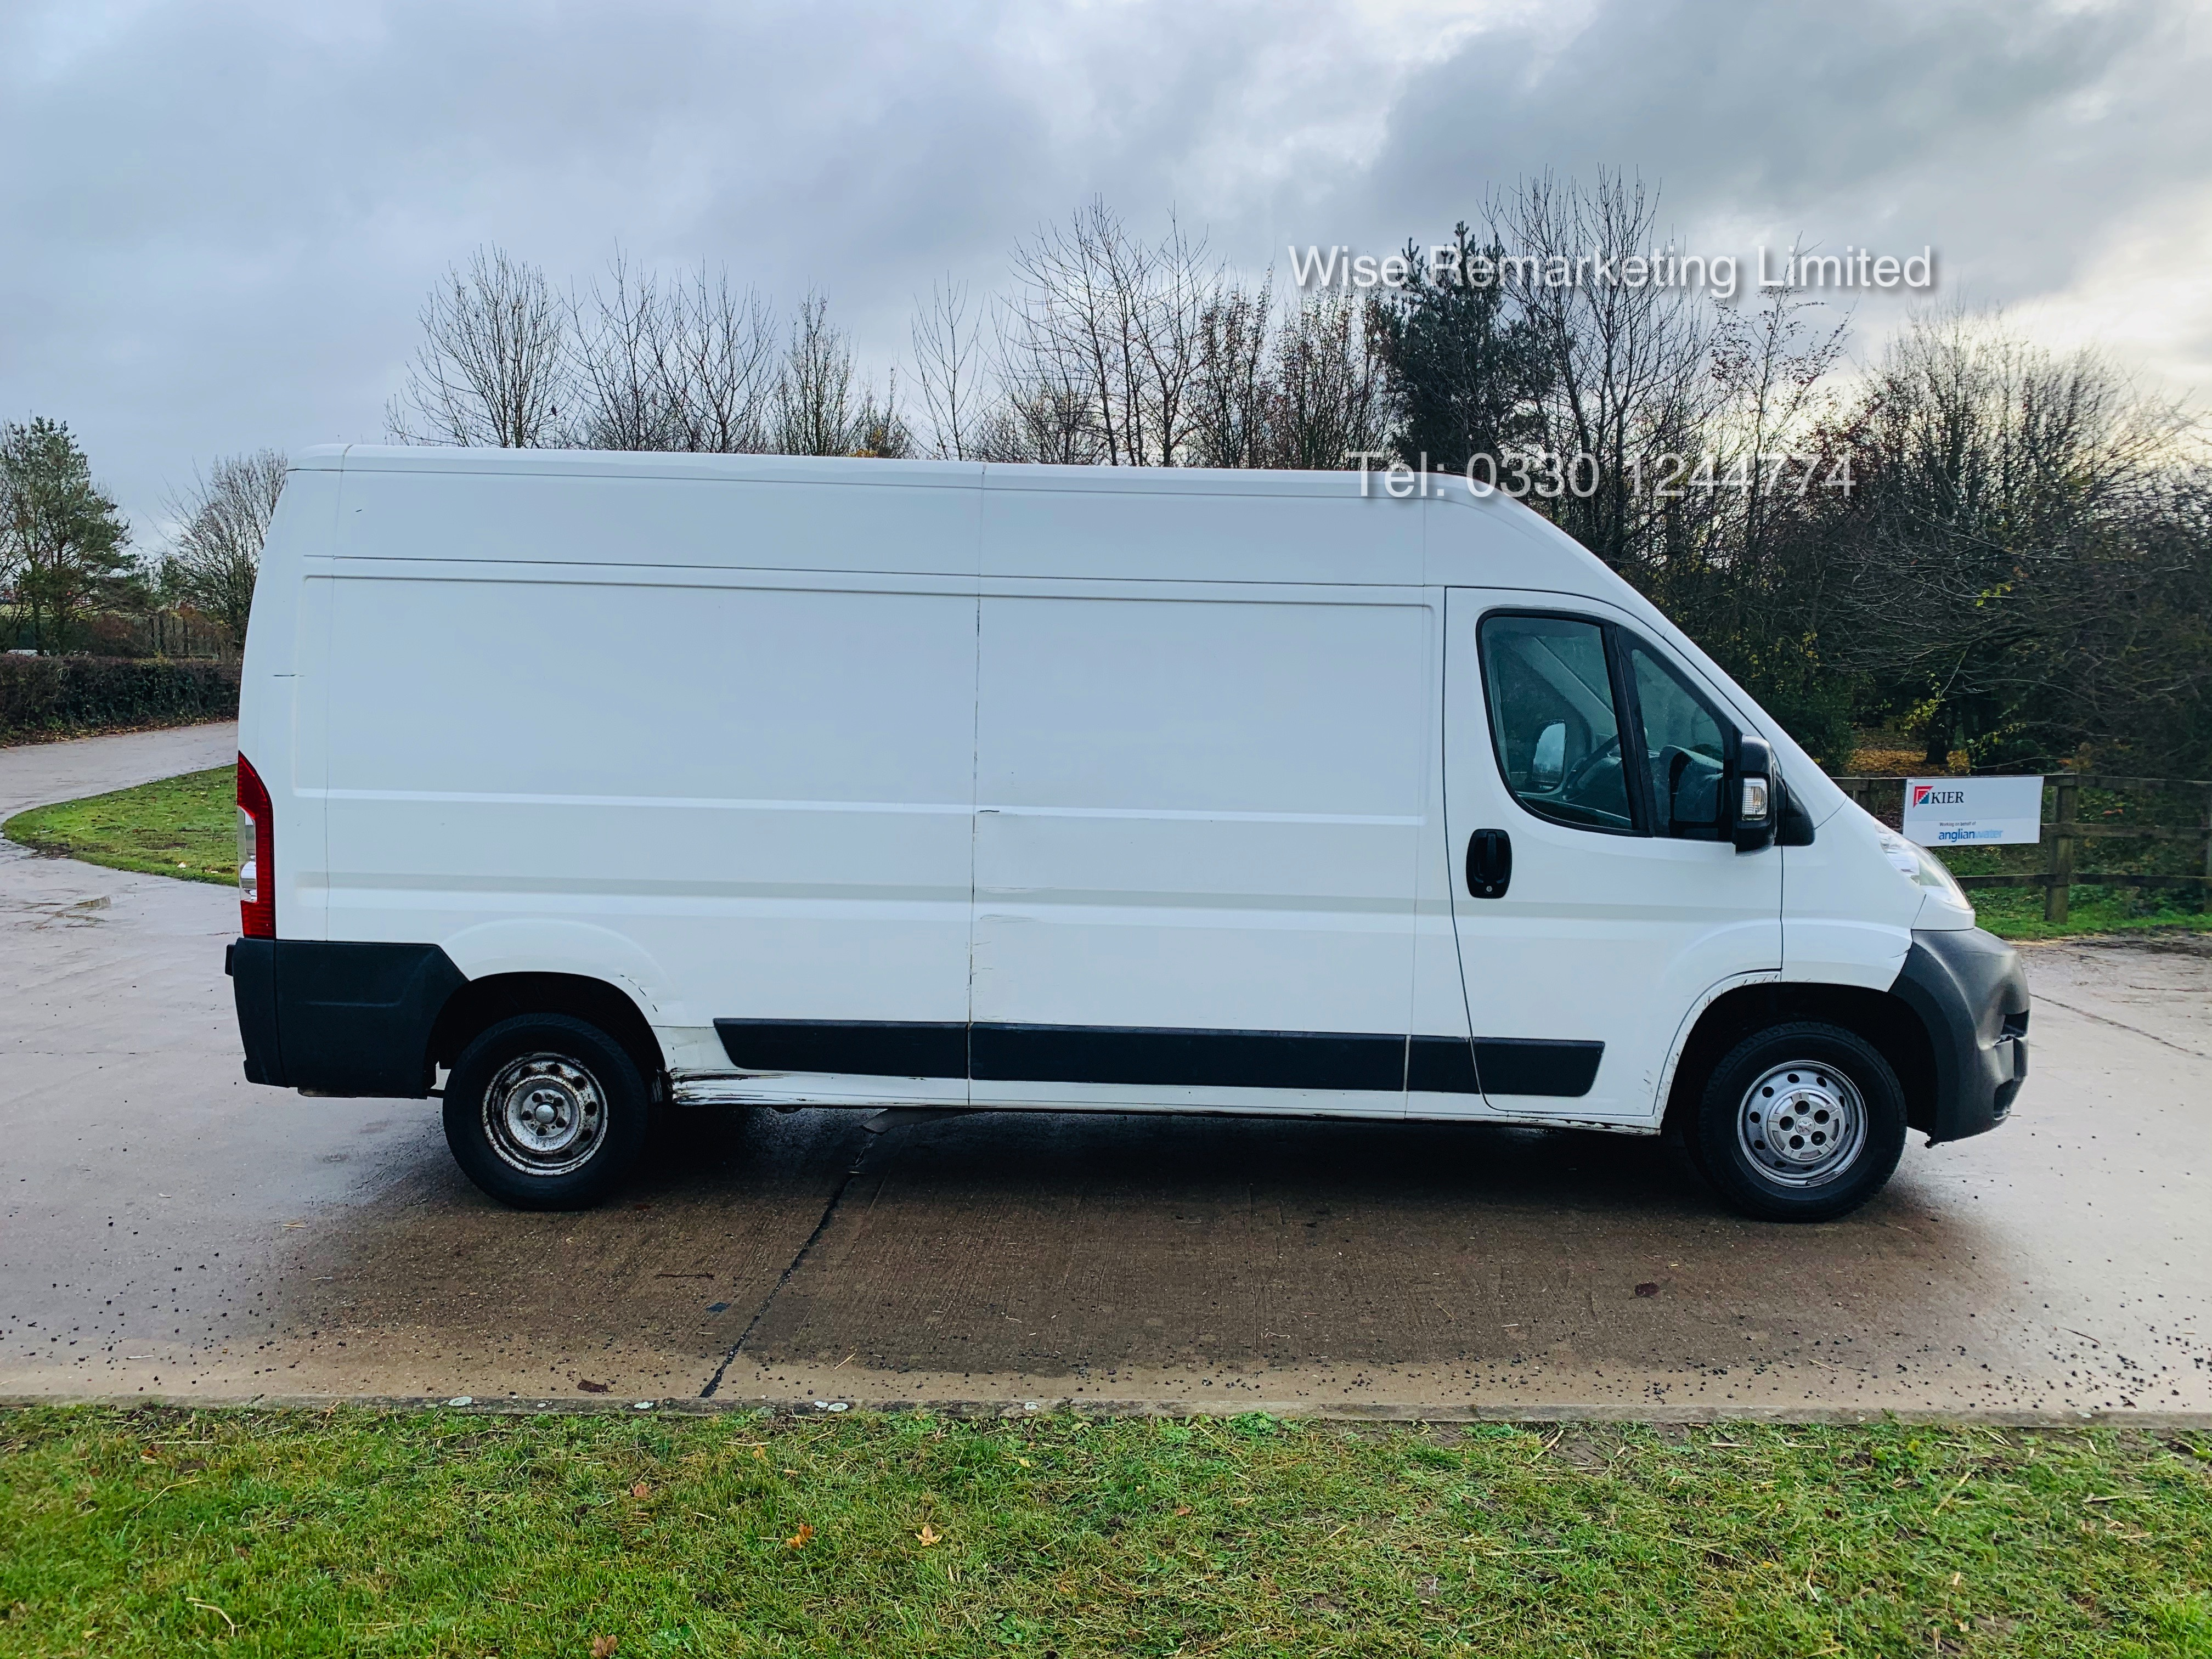 Peugeot Boxer 335 2.2 HDi (L3H2) 2014 Model - 1 Keeper From New - Long Wheel Base - Image 6 of 17